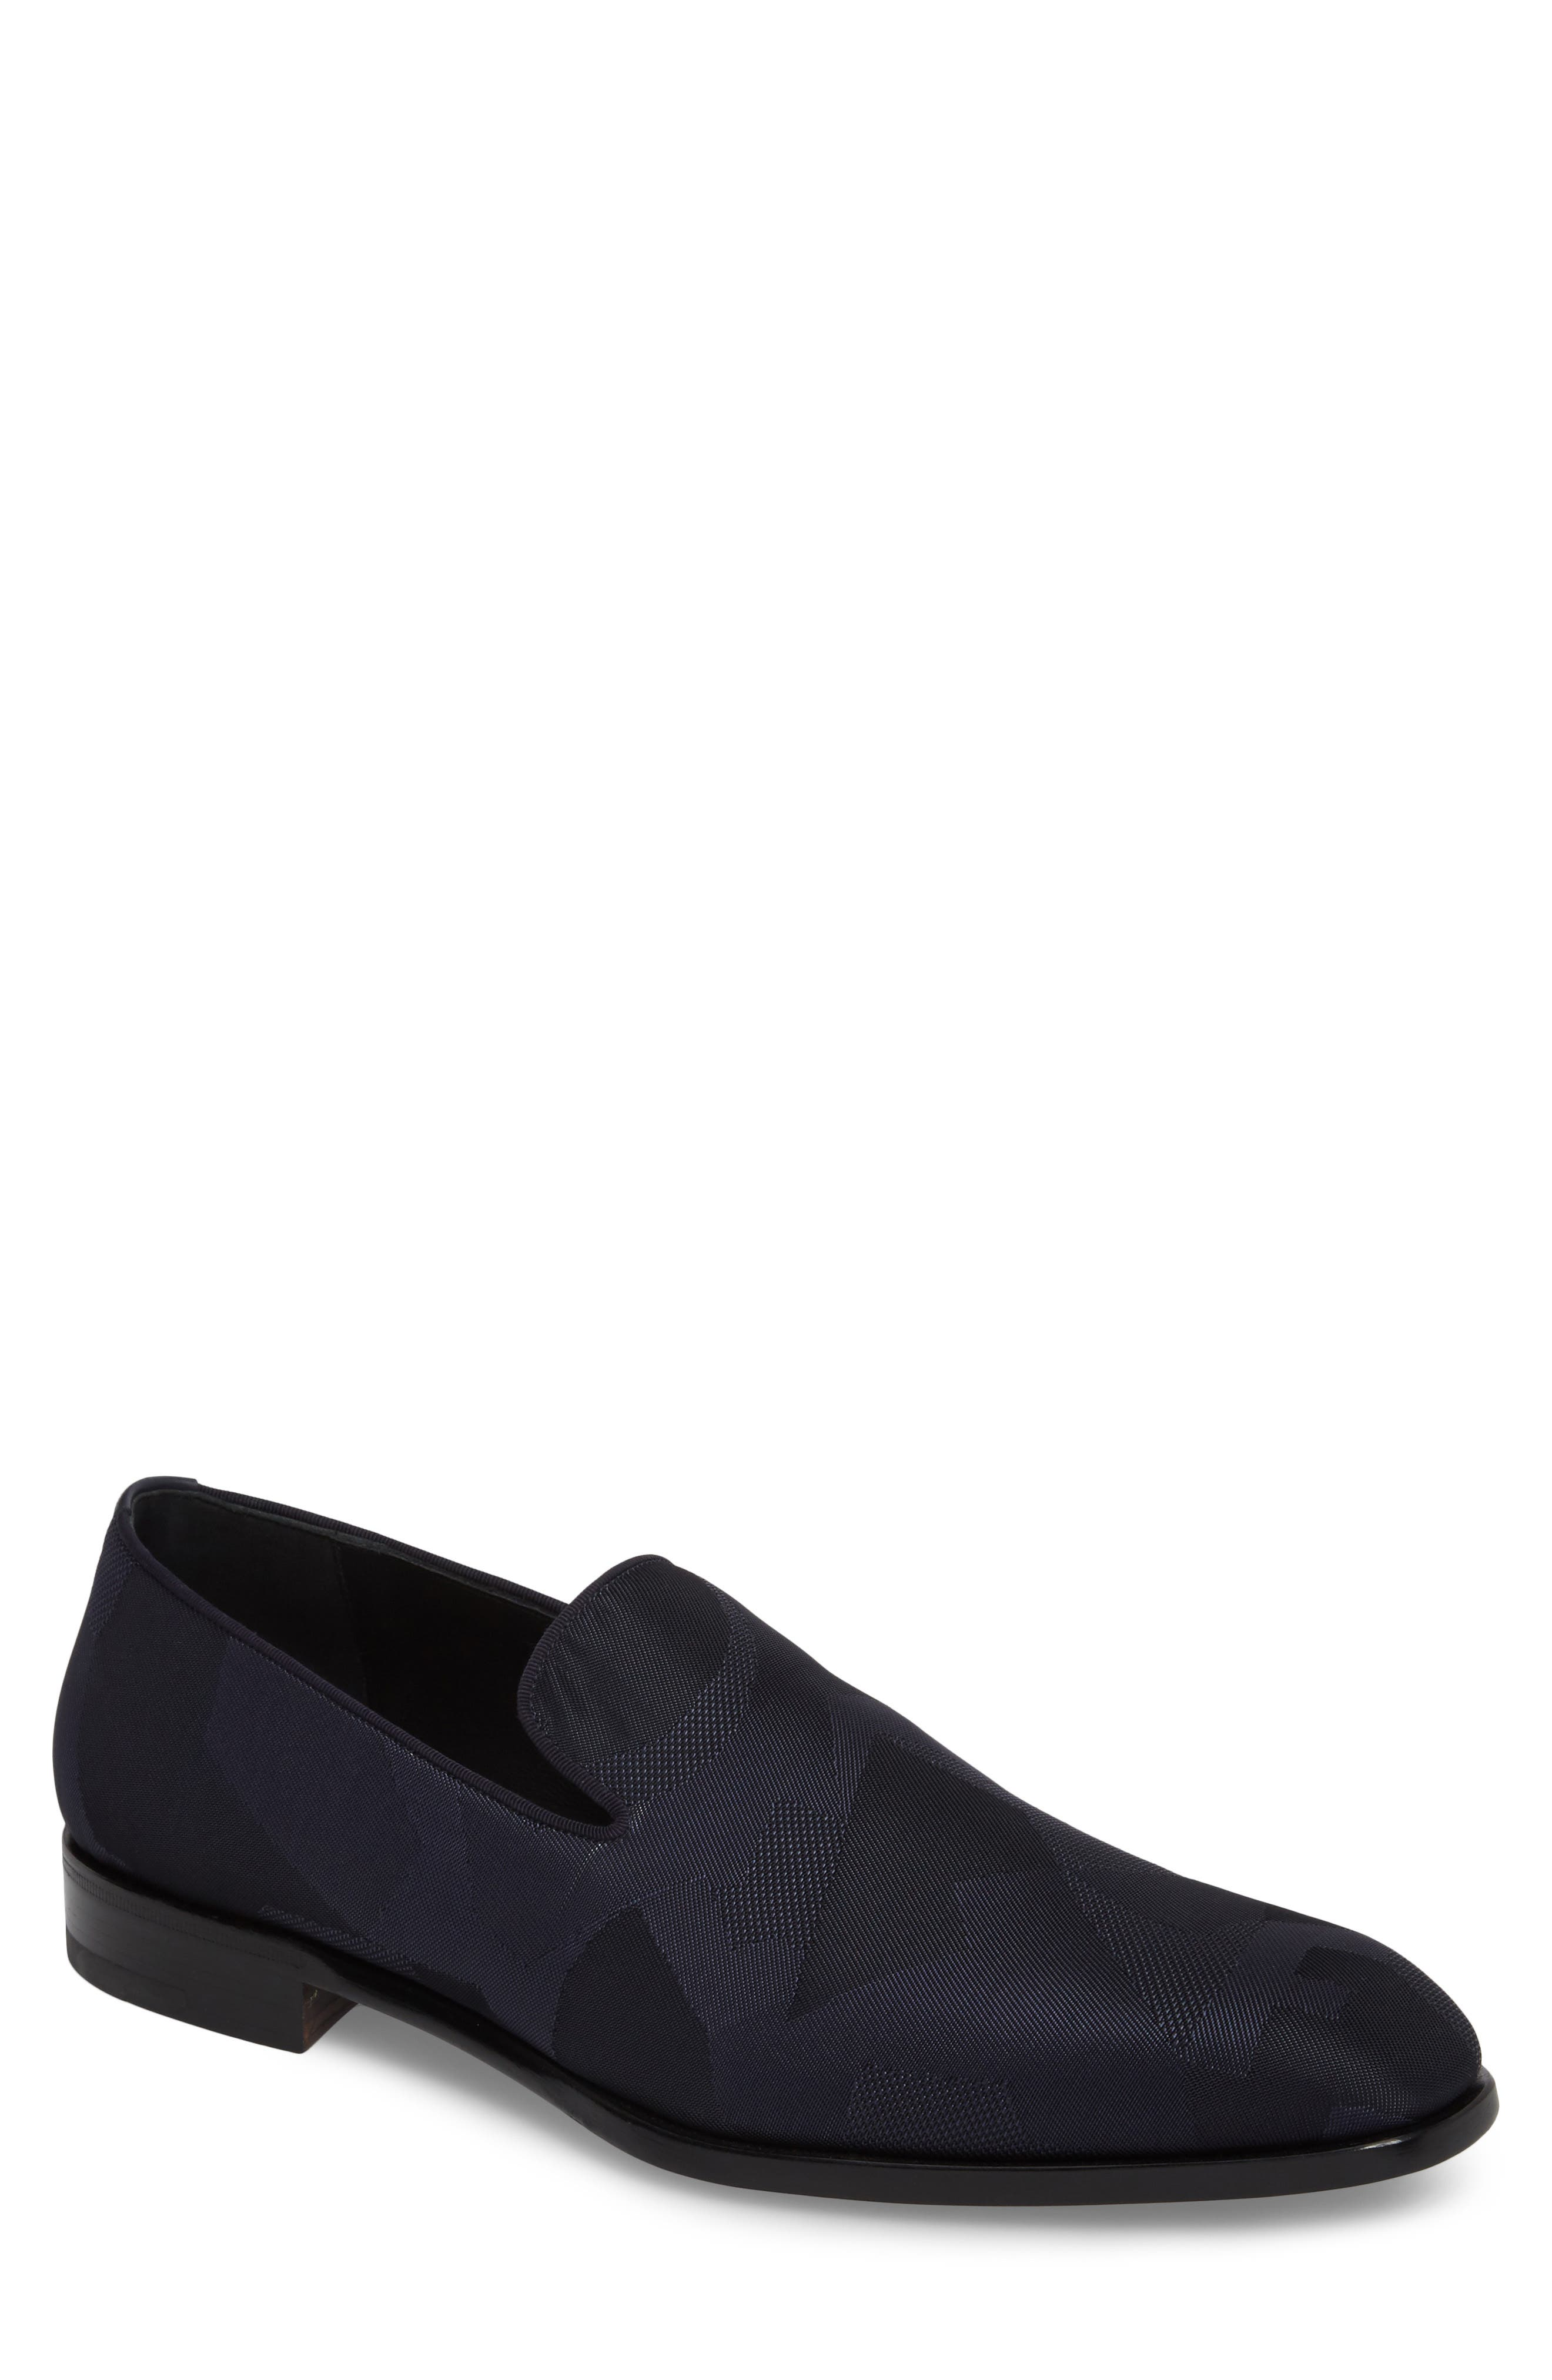 Class Venetian Loafer,                         Main,                         color, Navy